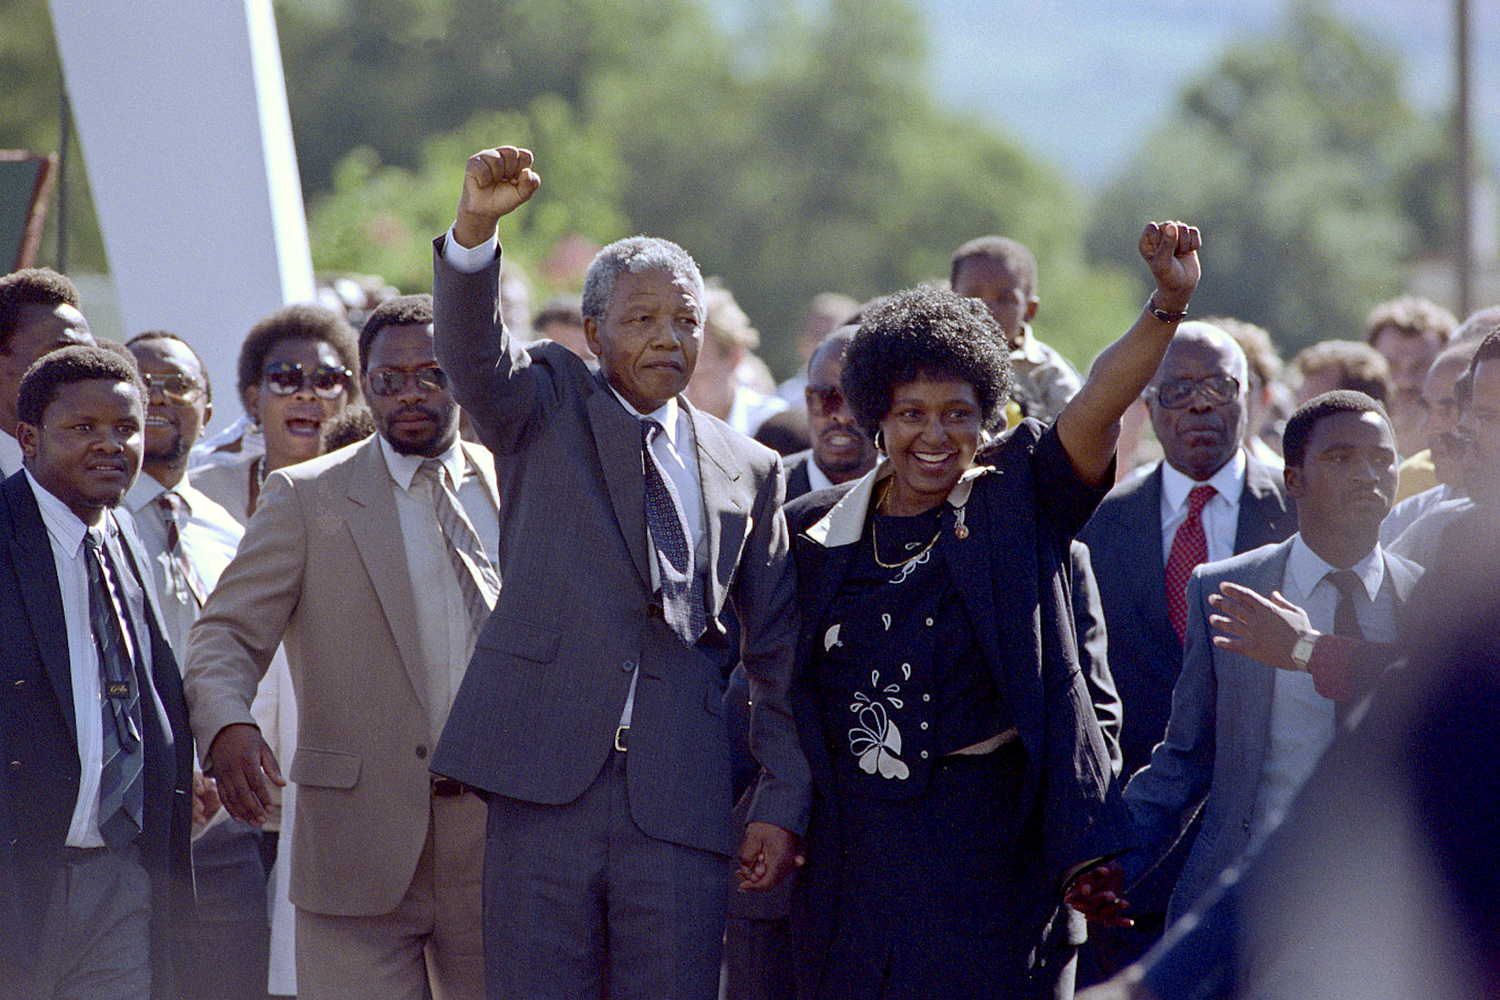 The world looked on as international hero Mandela walked out of prison after 27 years on Feb. 11, 1990, with his wife, Winnie. At 6'3  tall,  Madiba  and his presence met the stature that the world had expected.